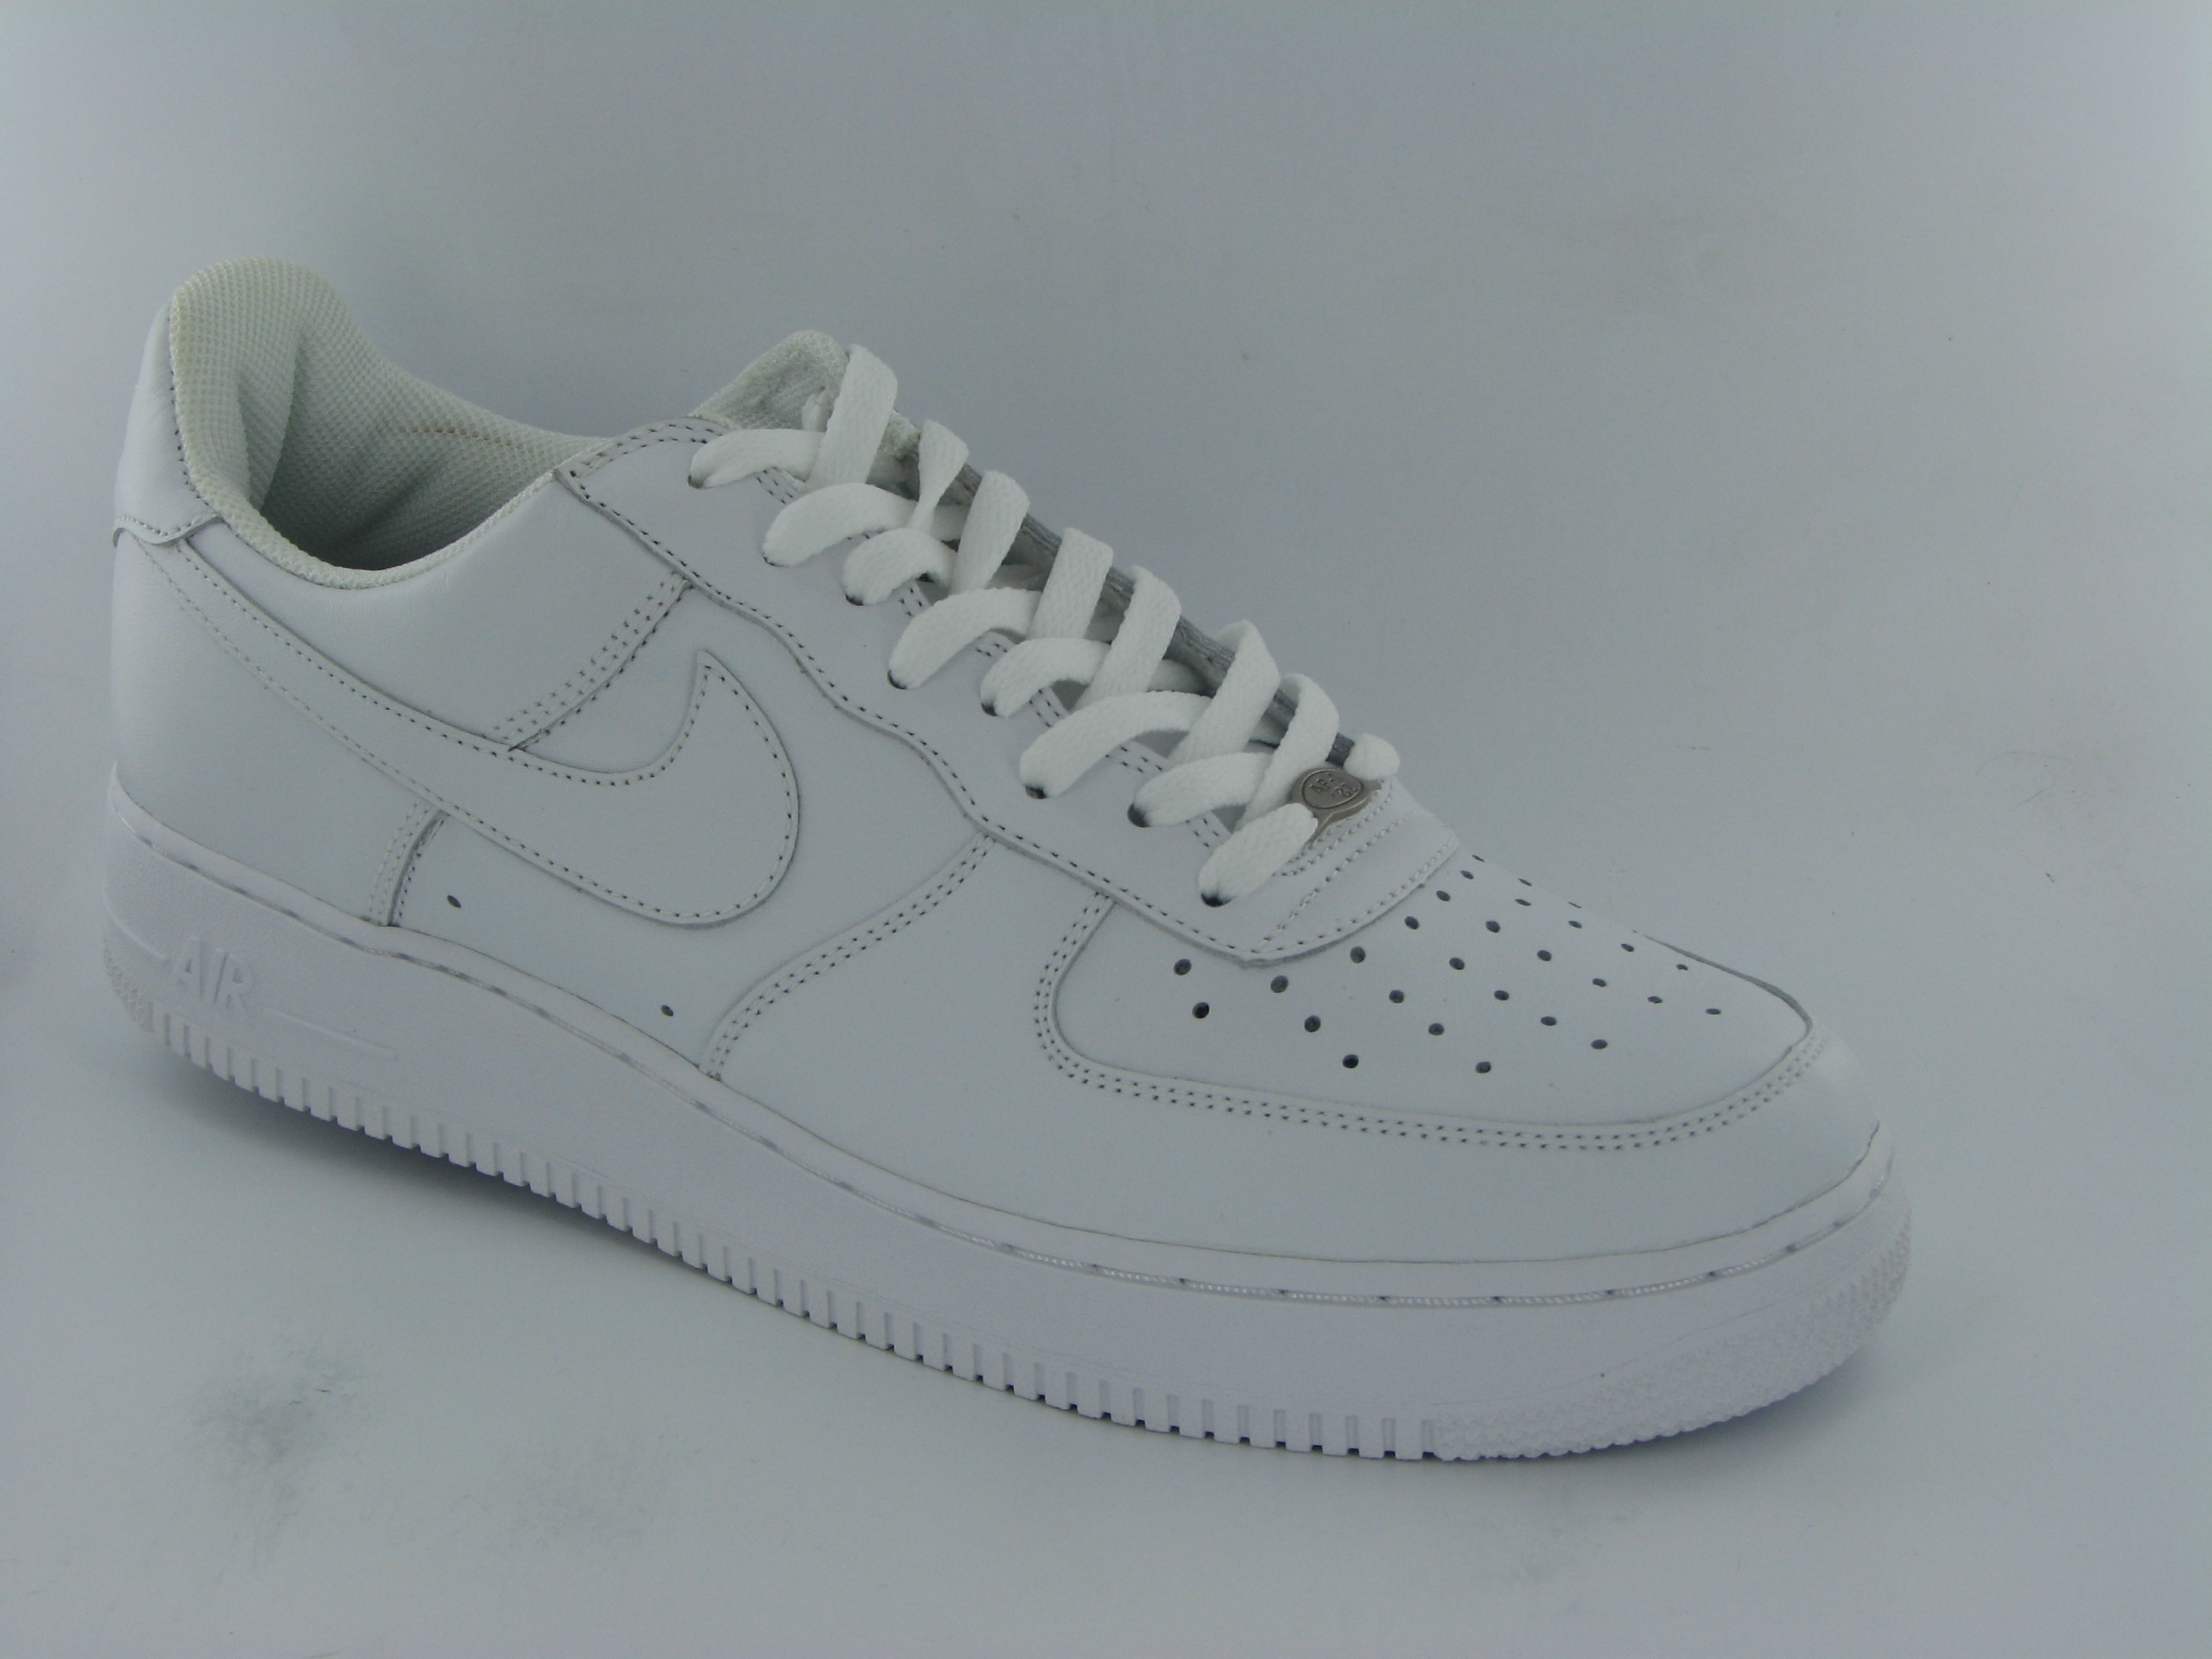 Nike air force 1 mid premium thanksgiving sold out -  Nike Air Force 1 306353 112 Thumbnail 1